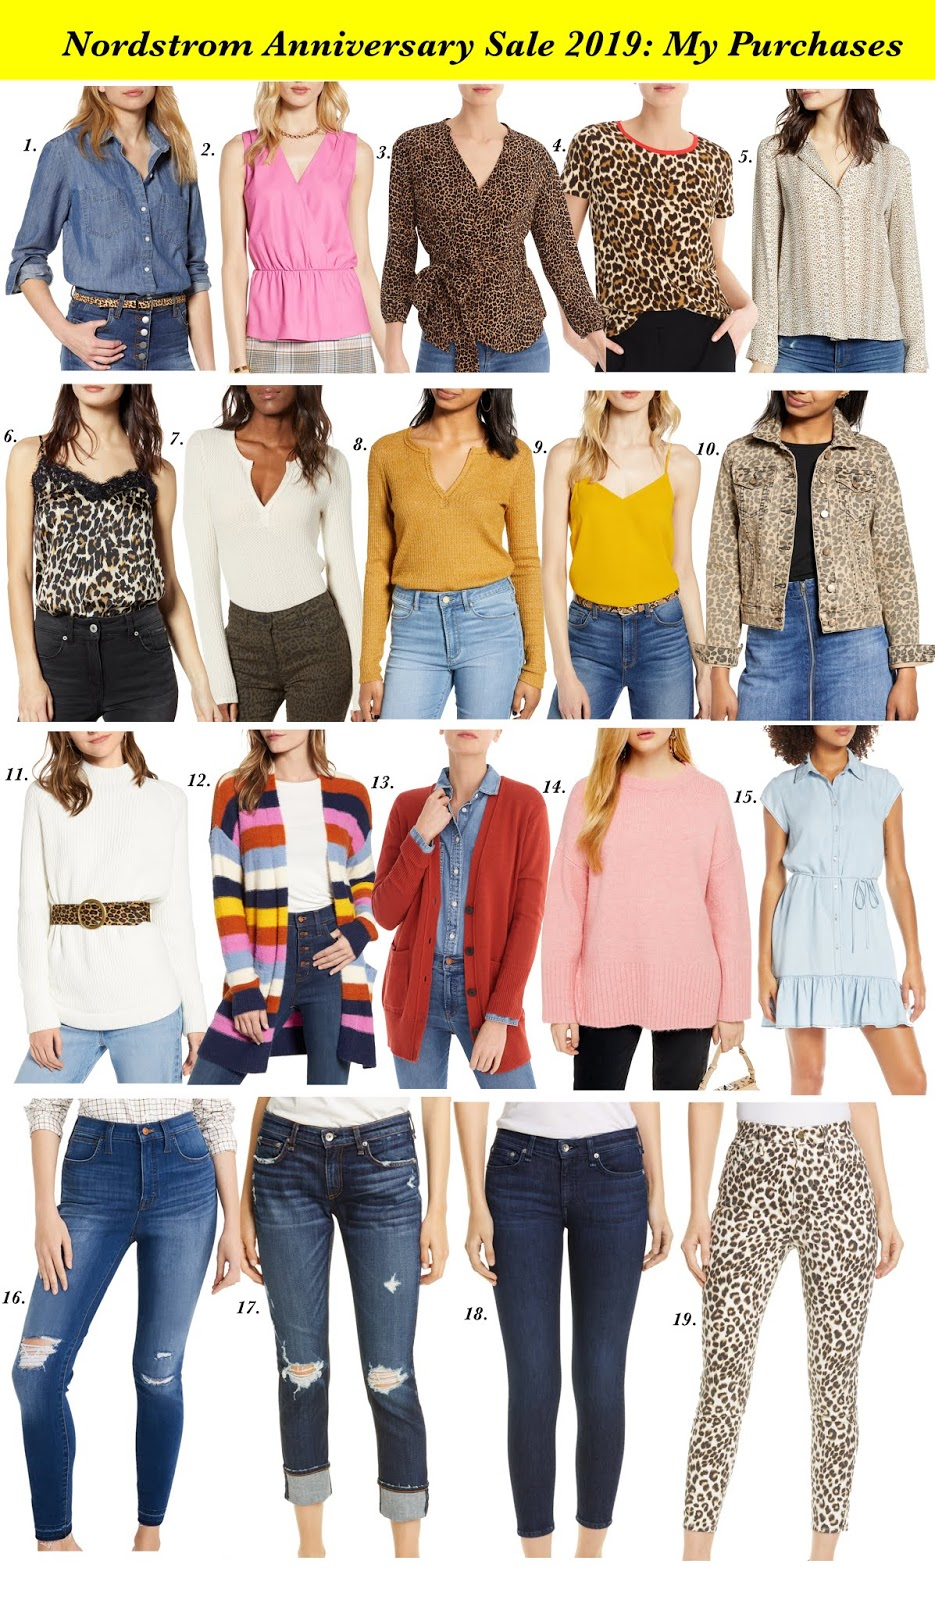 Nordstrom Anniversary Sale 2019: My Purchases + a Giveaway!! - Something Delightful Blog